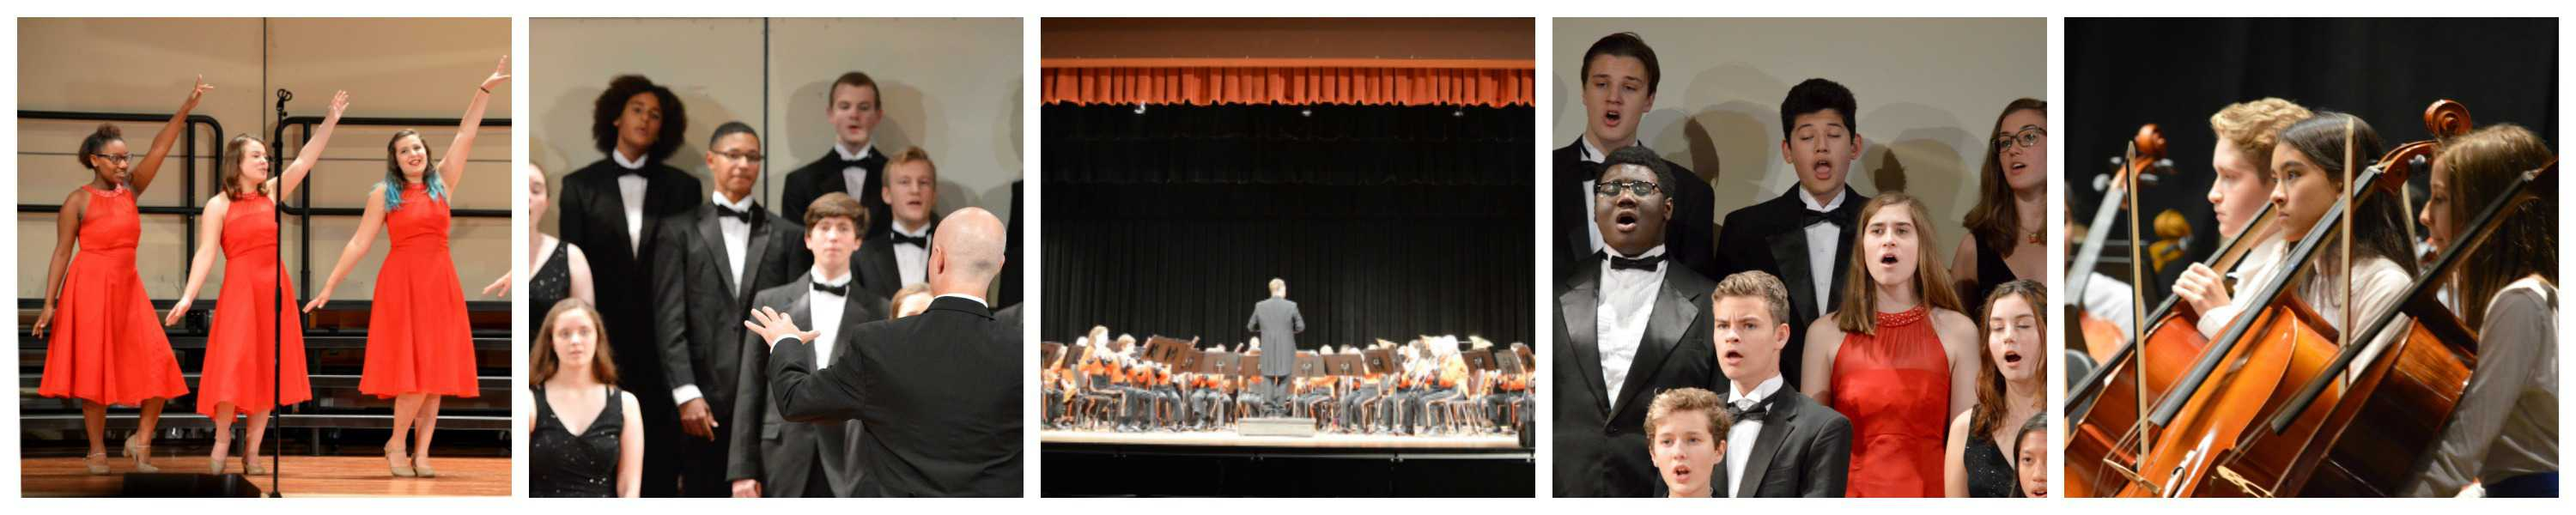 Page banner showing a collage of performances including Walker orchestra, CHS choir, and CHS band.